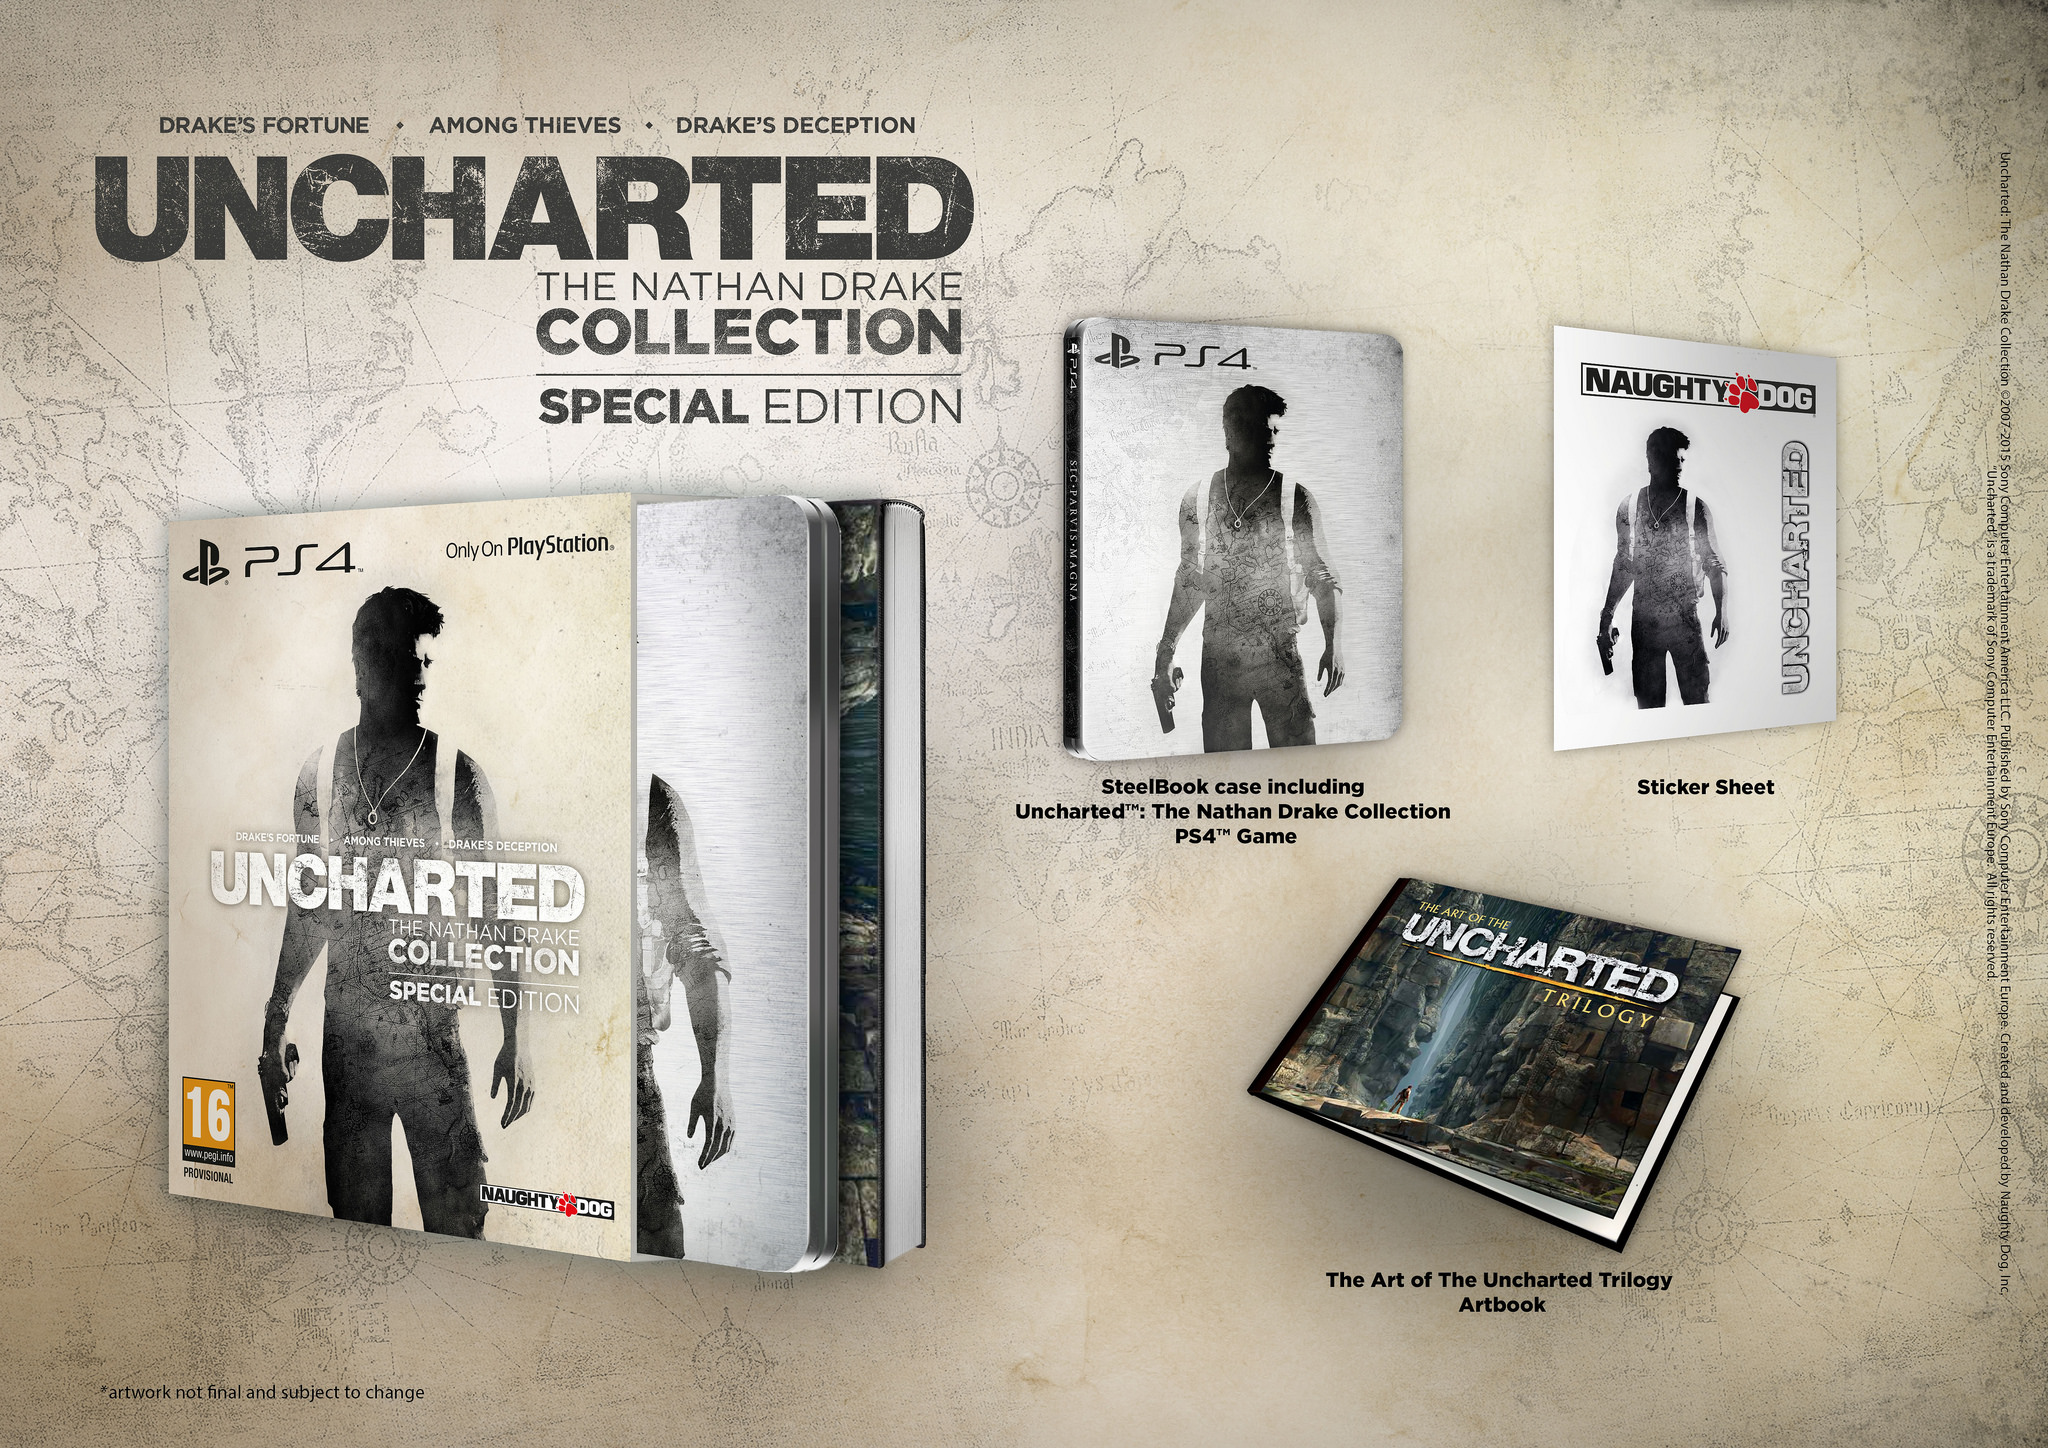 uncharted-collection-1-0